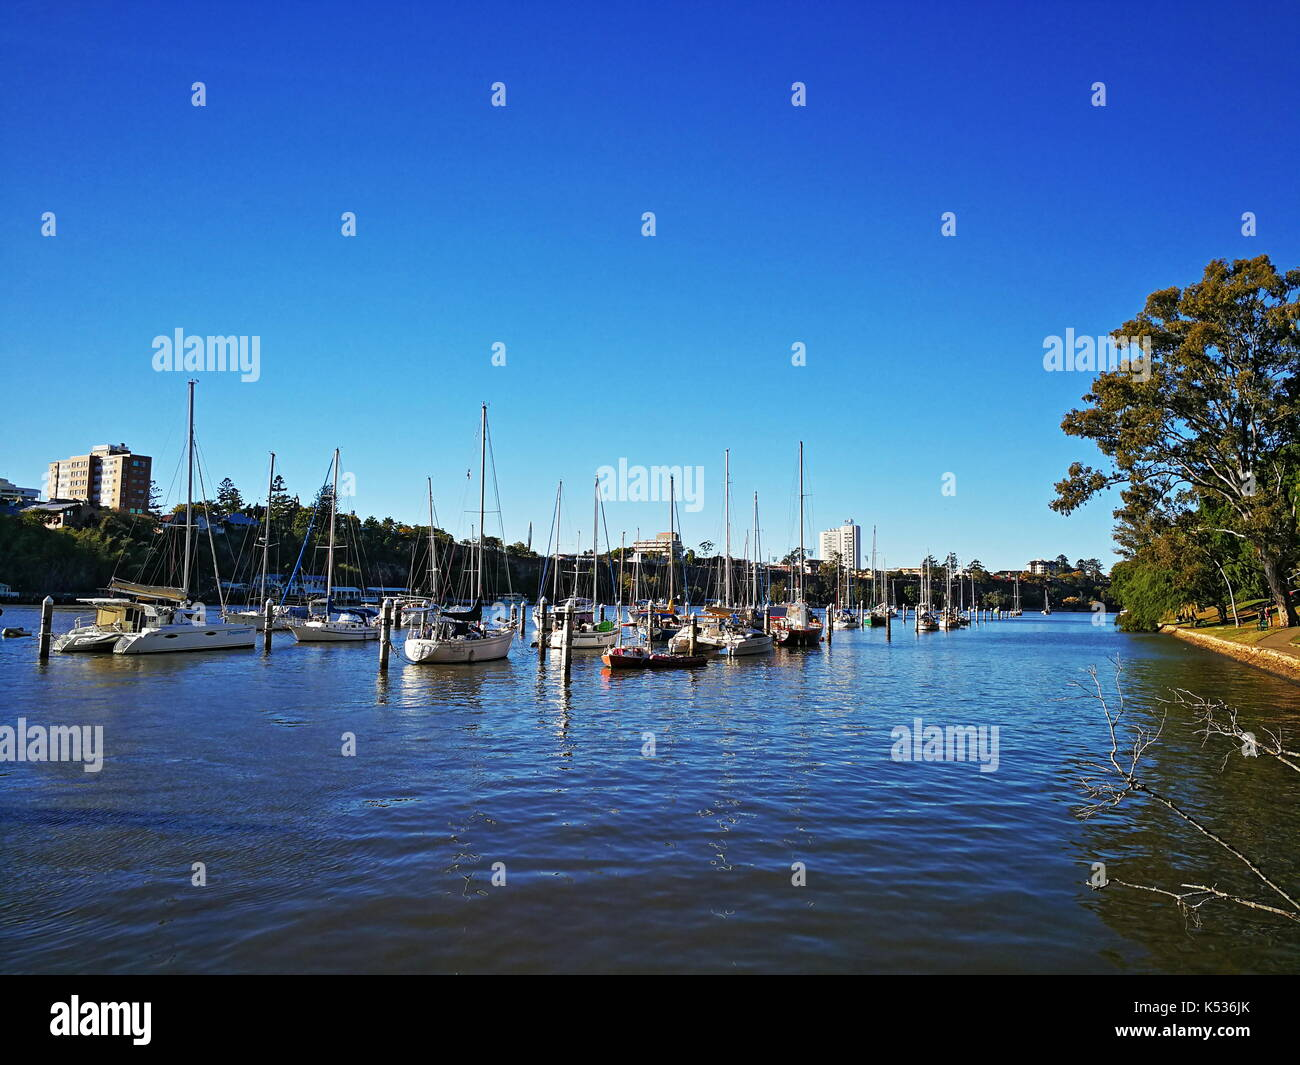 Sailing boats docked at the riverfront of the Brisbane River near Brisbane City Botanic Gardens, Queensland, Australia - Stock Image